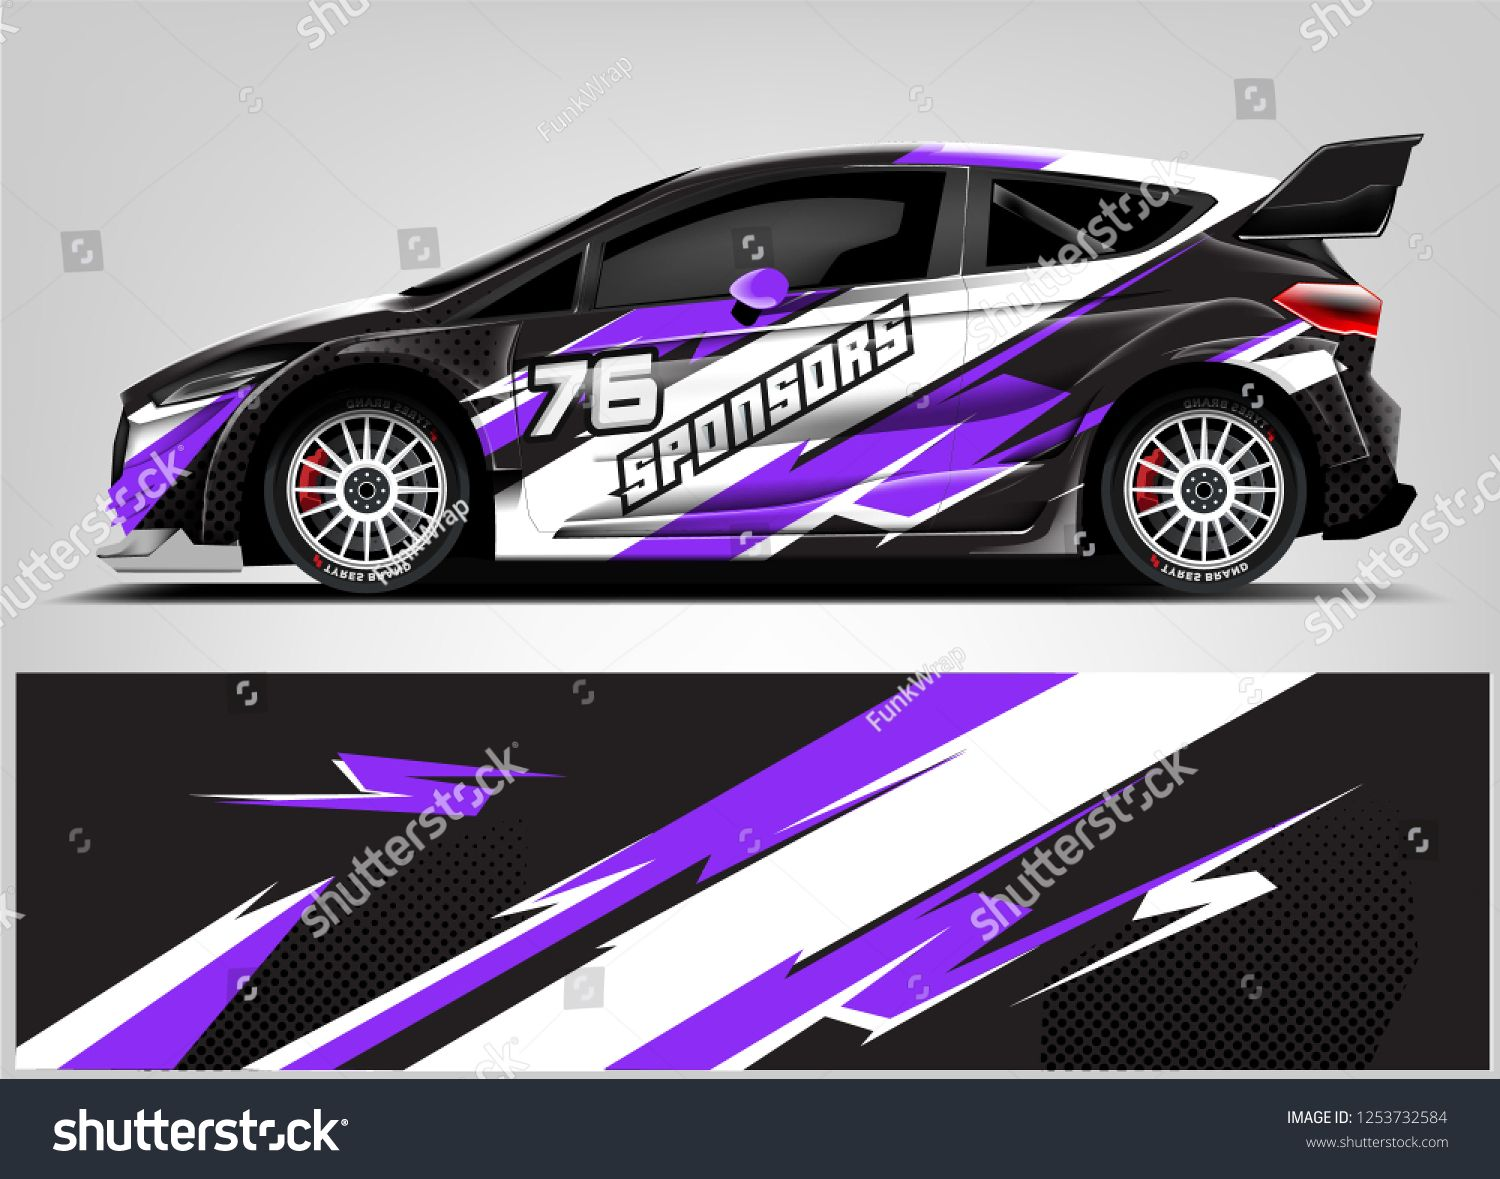 Car Decal Sticker Wrap Design Vector Graphic Abstract Stripe Racing Background Kit Designs For Vehicle Race Car Ral Spon Car Decals Stickers Car Car Decals [ 1179 x 1500 Pixel ]